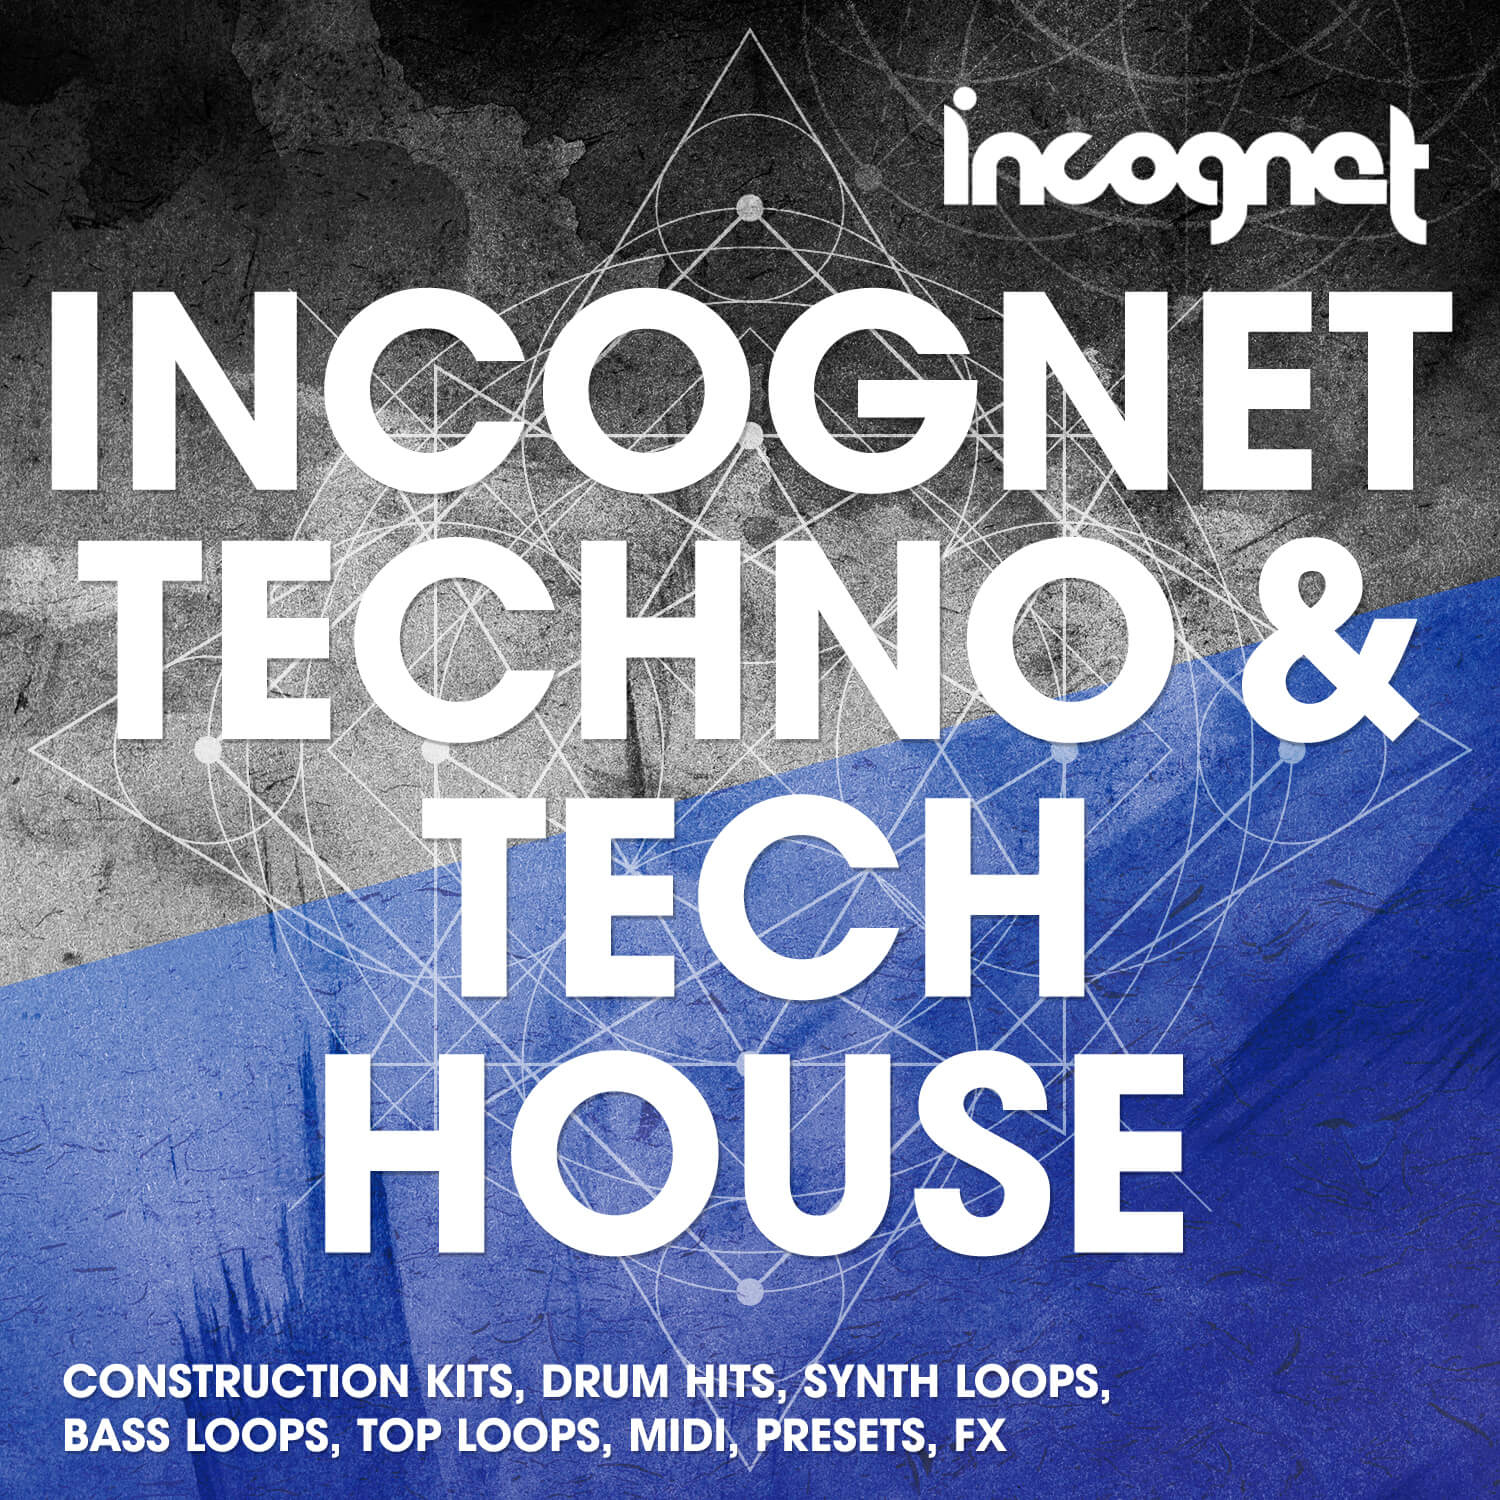 Techno and Tech House sample pack by Incognet released